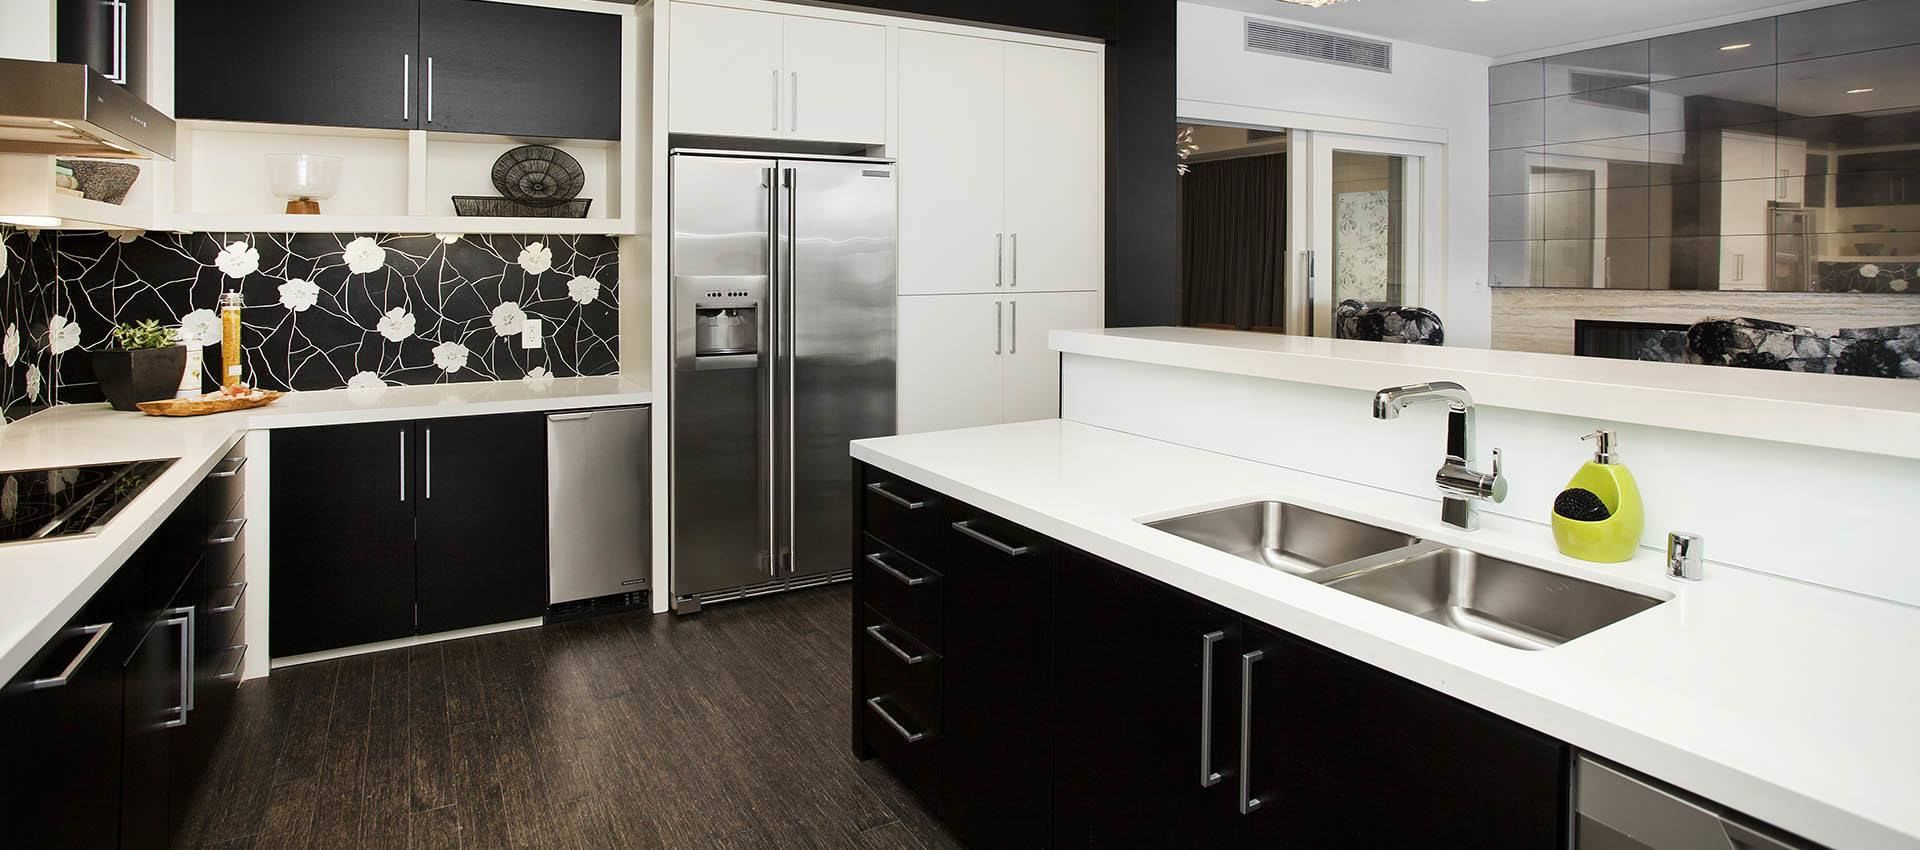 Kitchen With Hardwood Floors at apartments in Glendale, CA